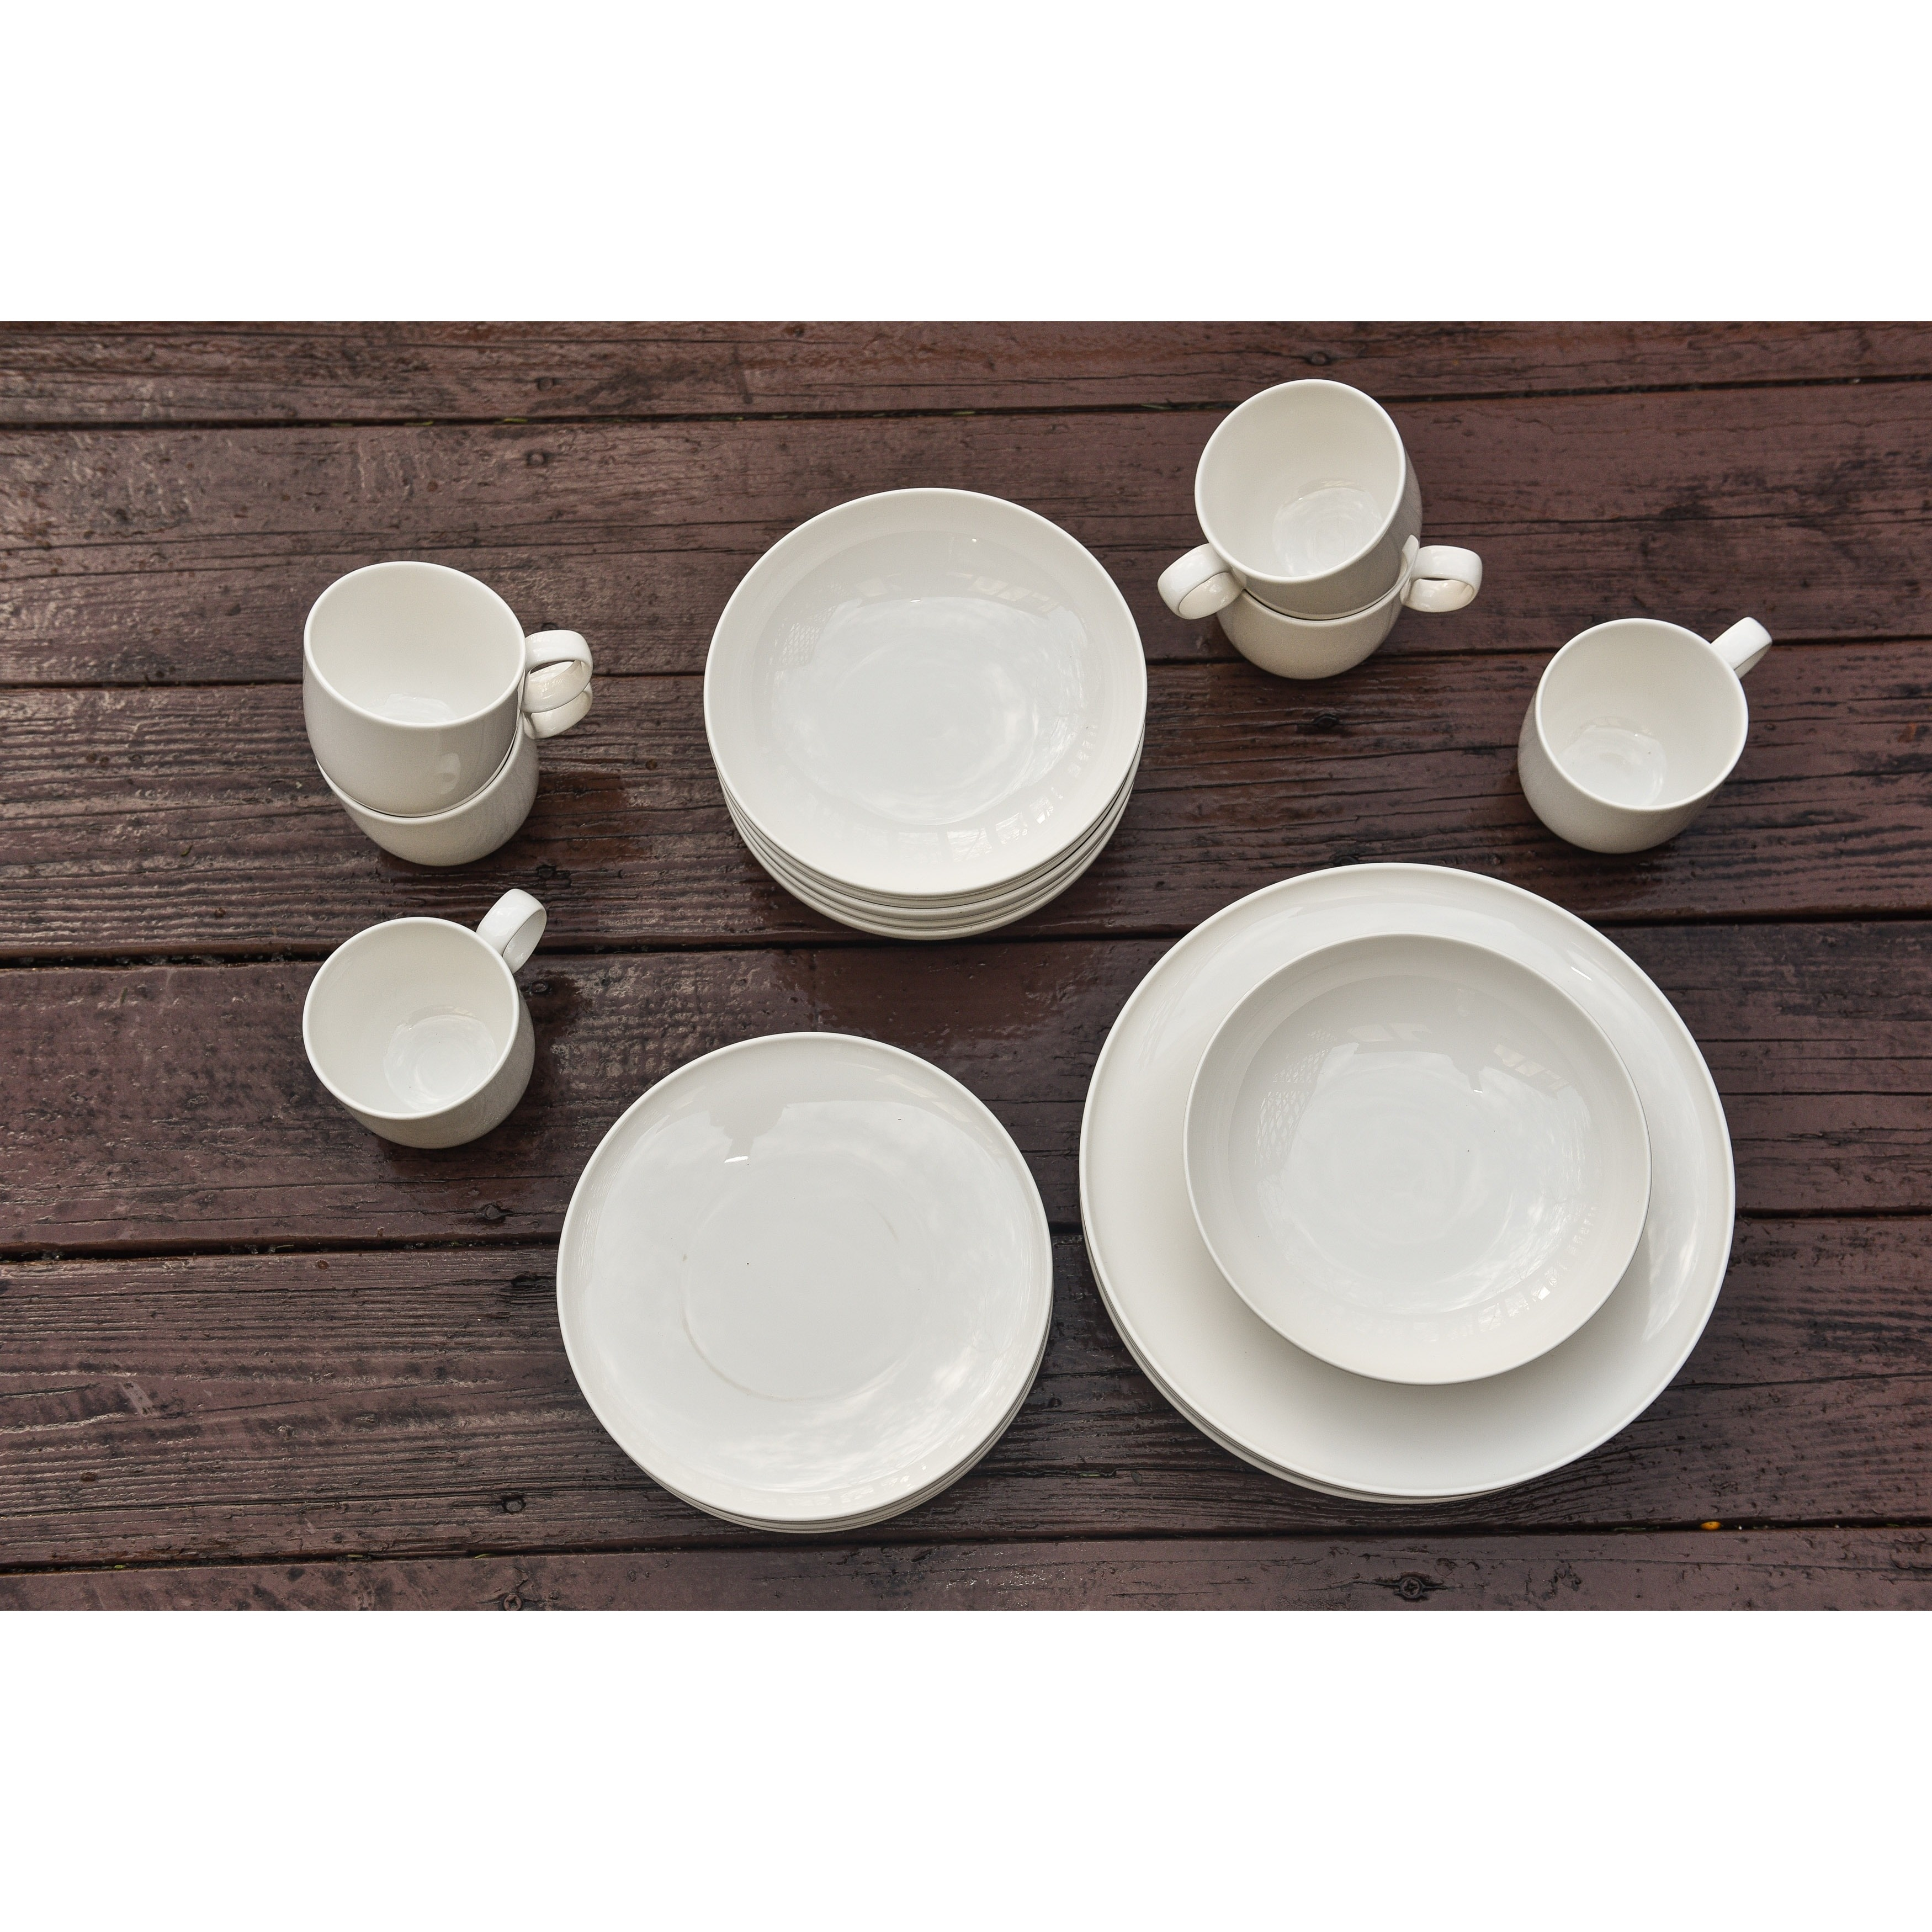 Red Vanilla Everytime White 24-piece Dinnerware Set - Free Shipping Today - Overstock.com - 12274653  sc 1 st  Overstock.com & Red Vanilla Everytime White 24-piece Dinnerware Set - Free Shipping ...